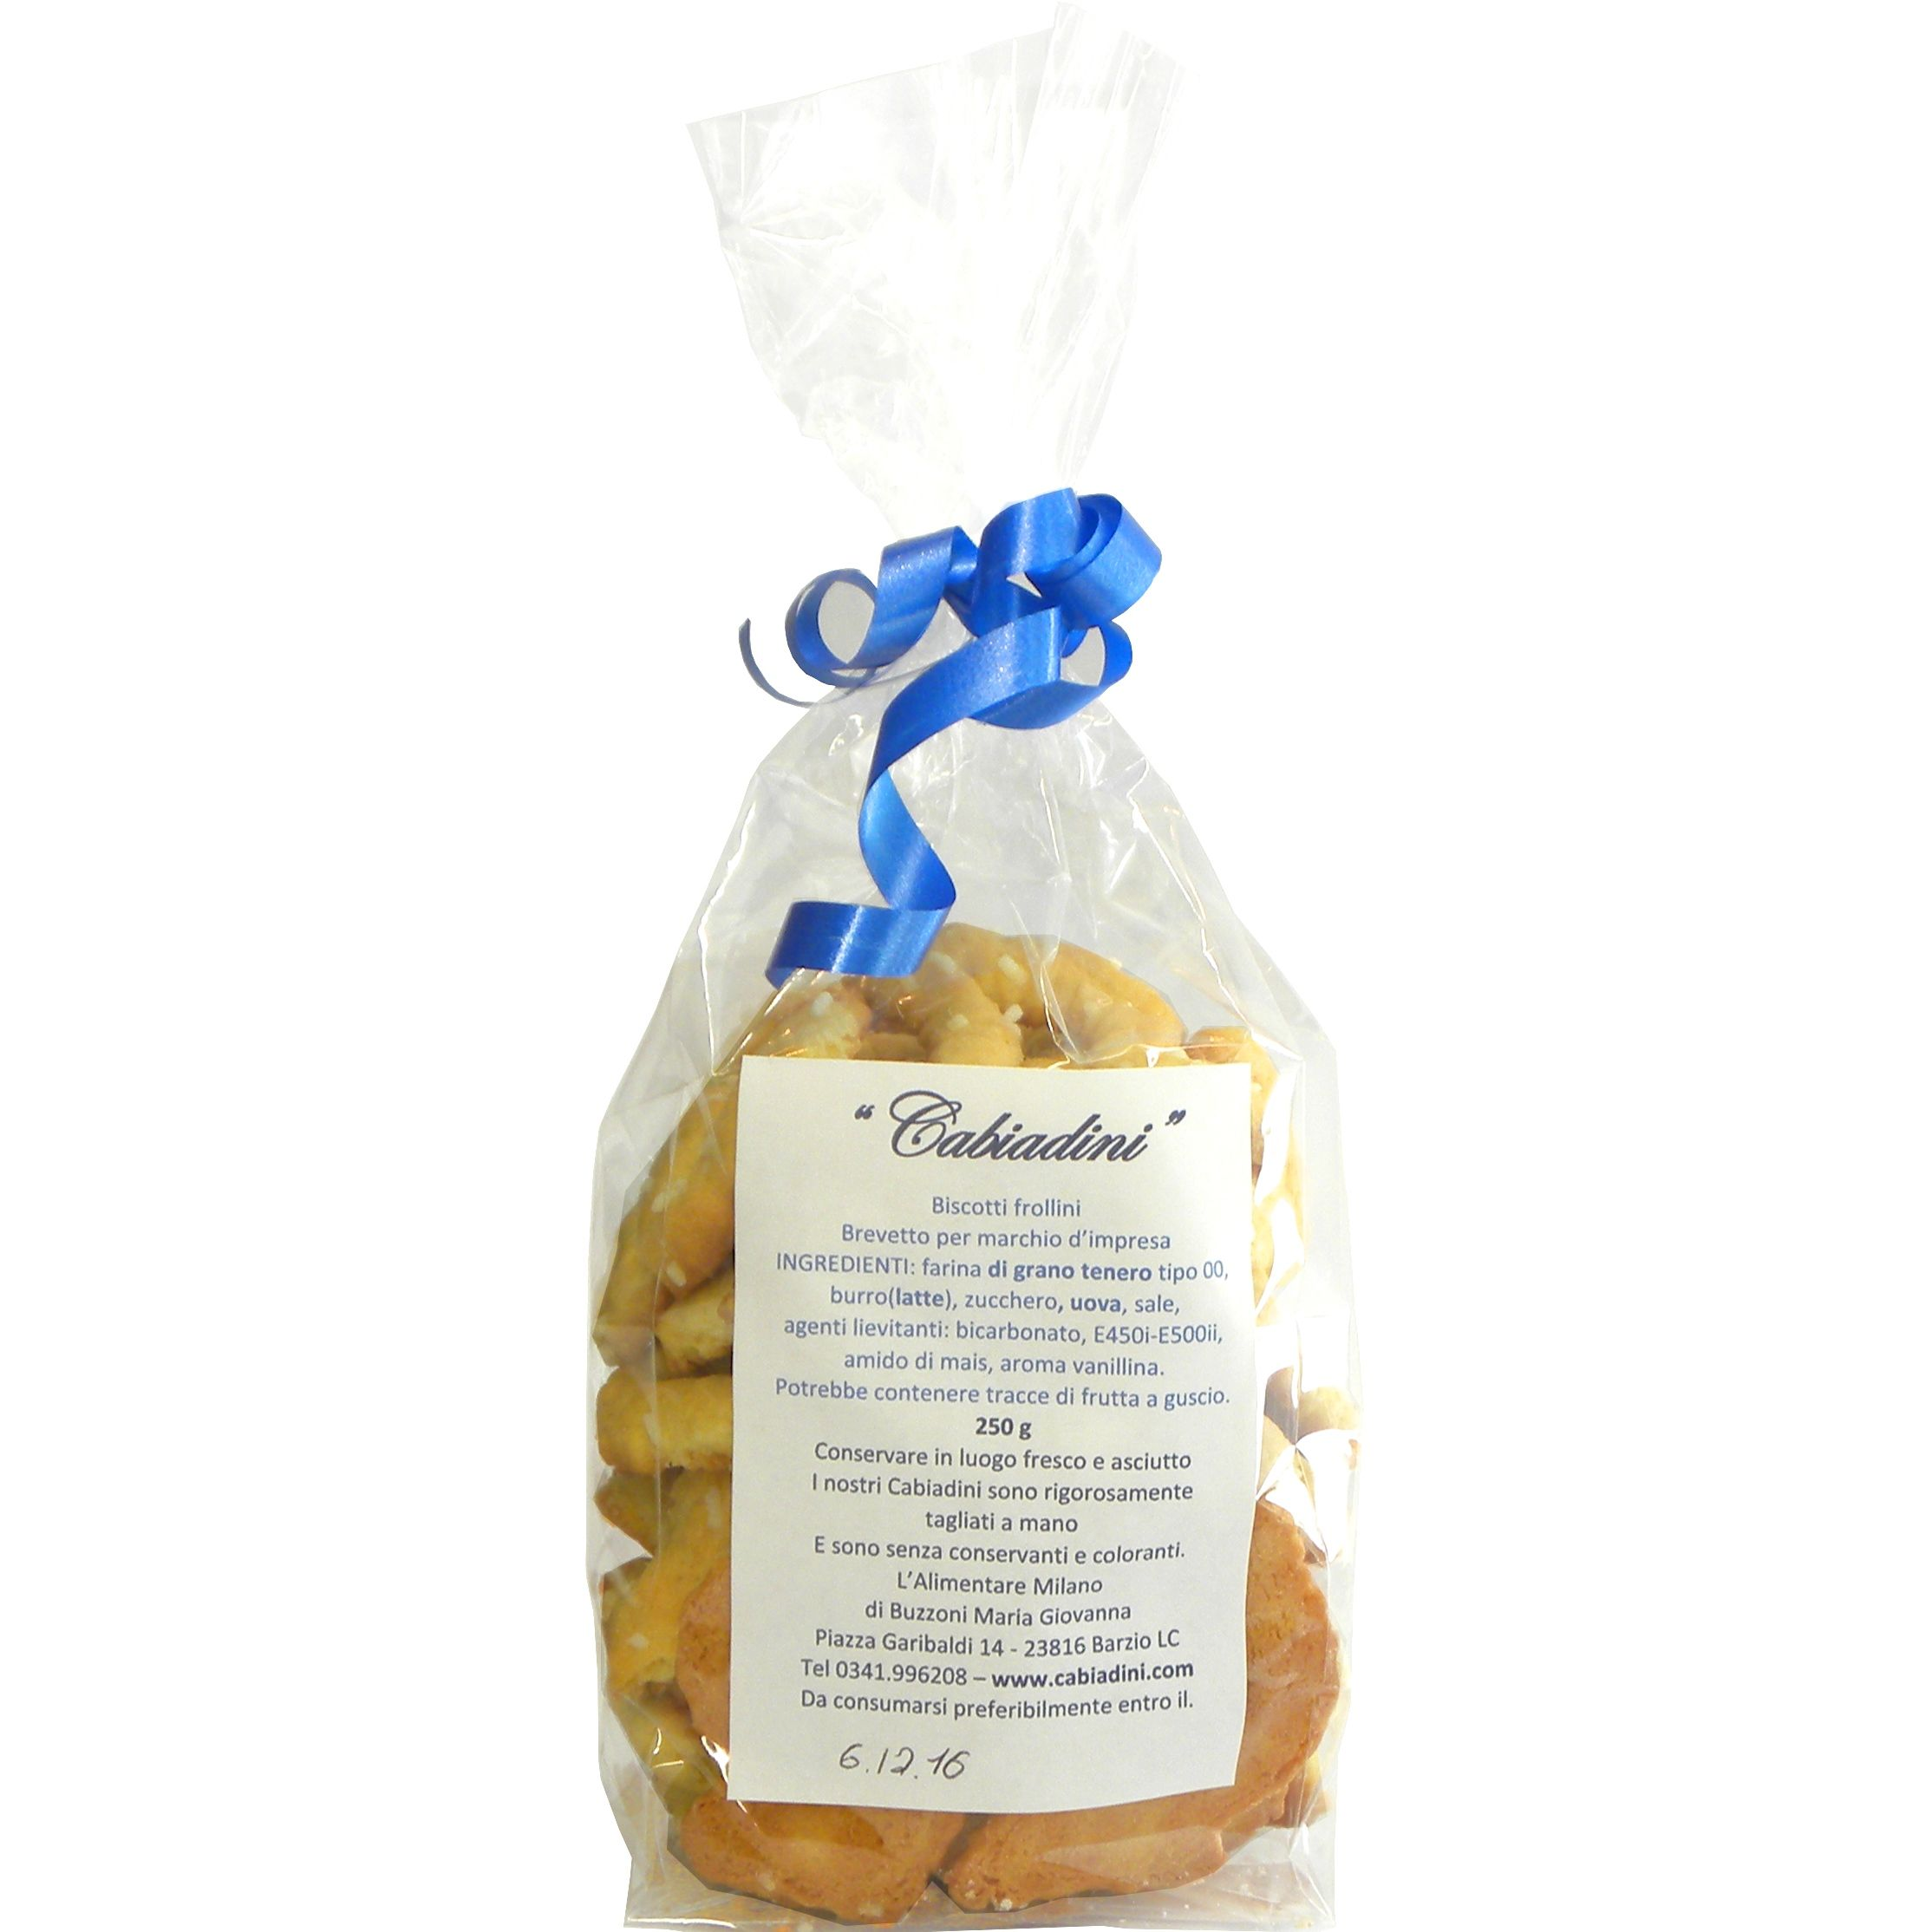 Cabiadini cookies – Italian biscuits – best Italian food – Gustorotondo online food shop – authentic Italian artisan food online